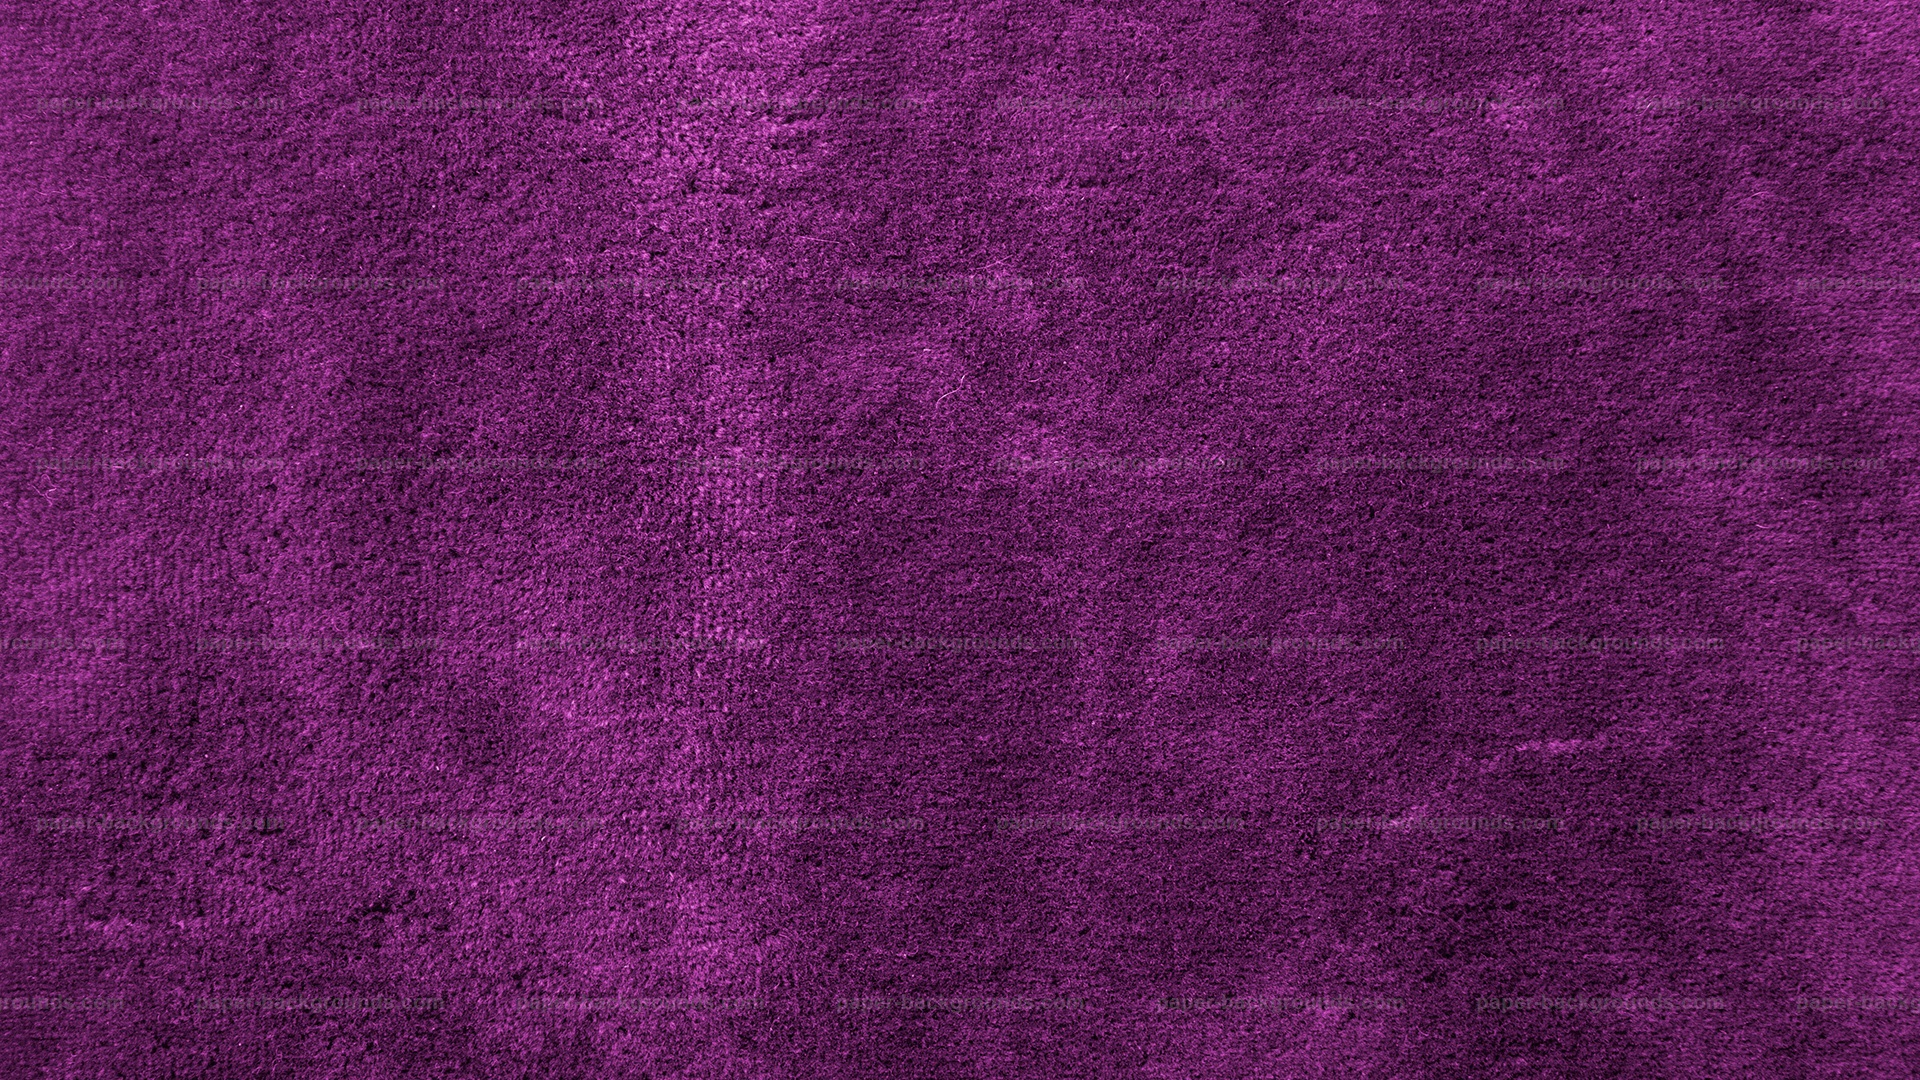 Hd Wallpapers Color Purple Wallpapersafari